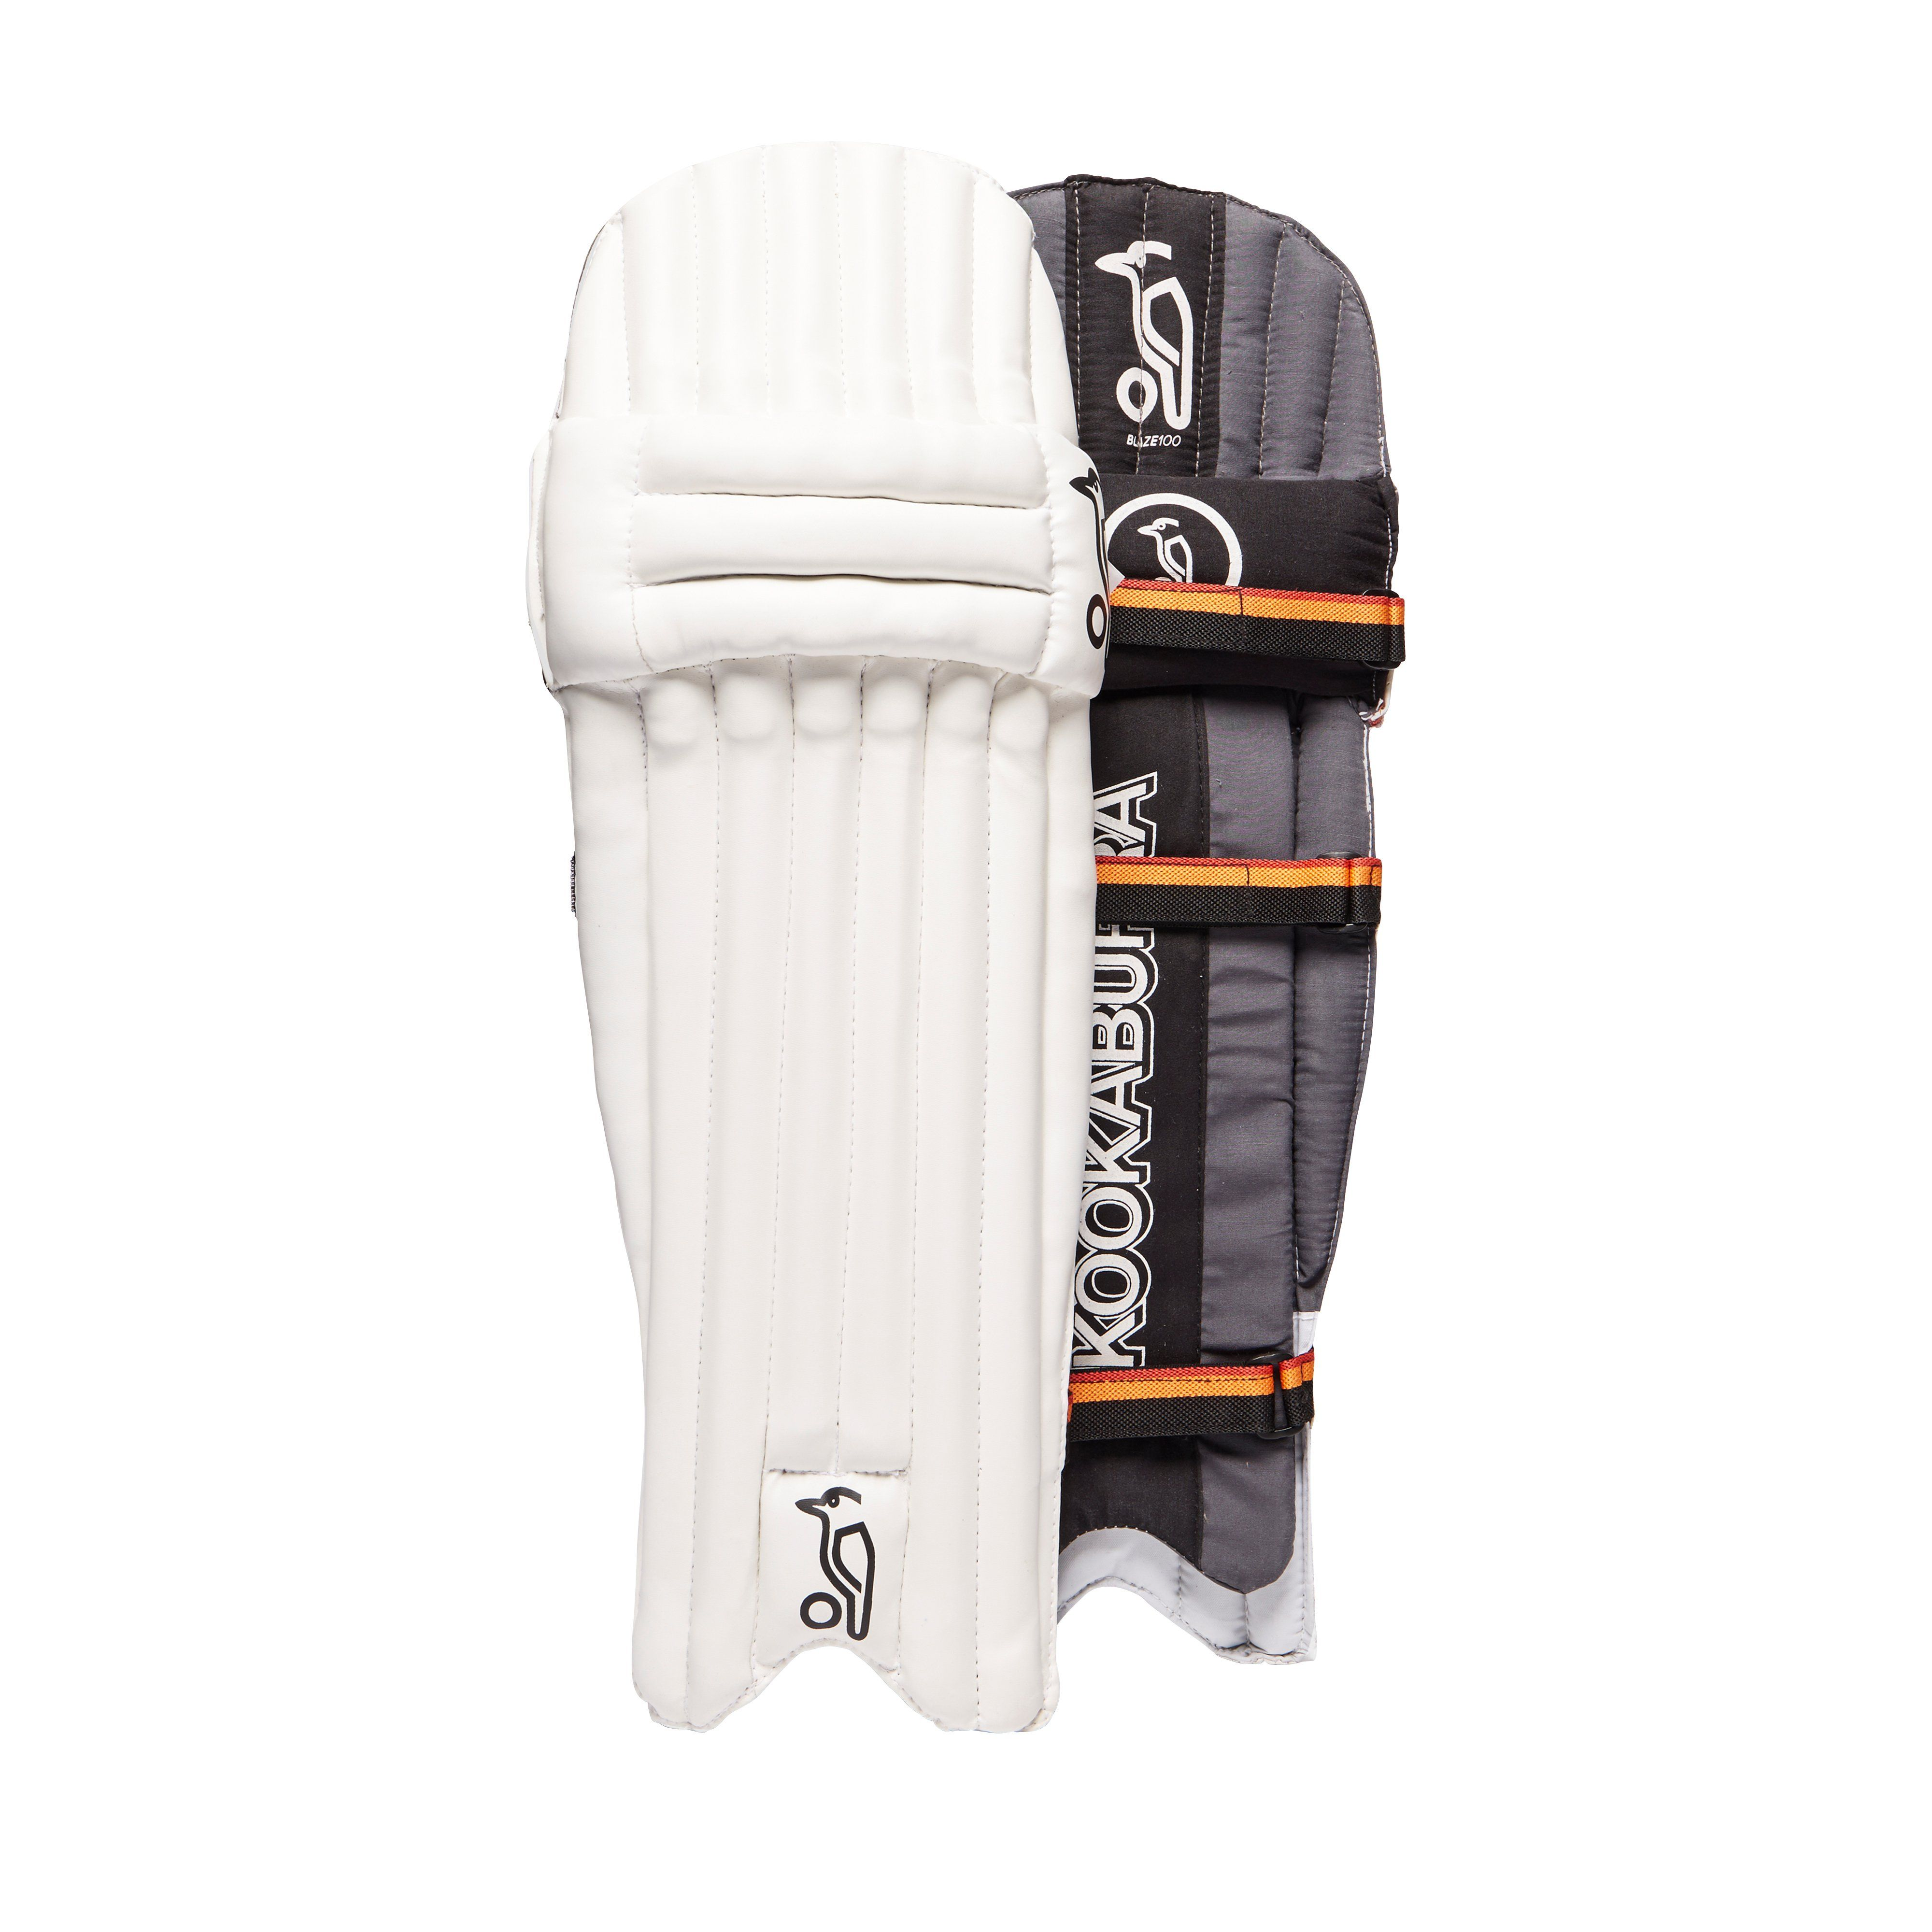 Kookaburra Blaze 100 Junior Batting Pads